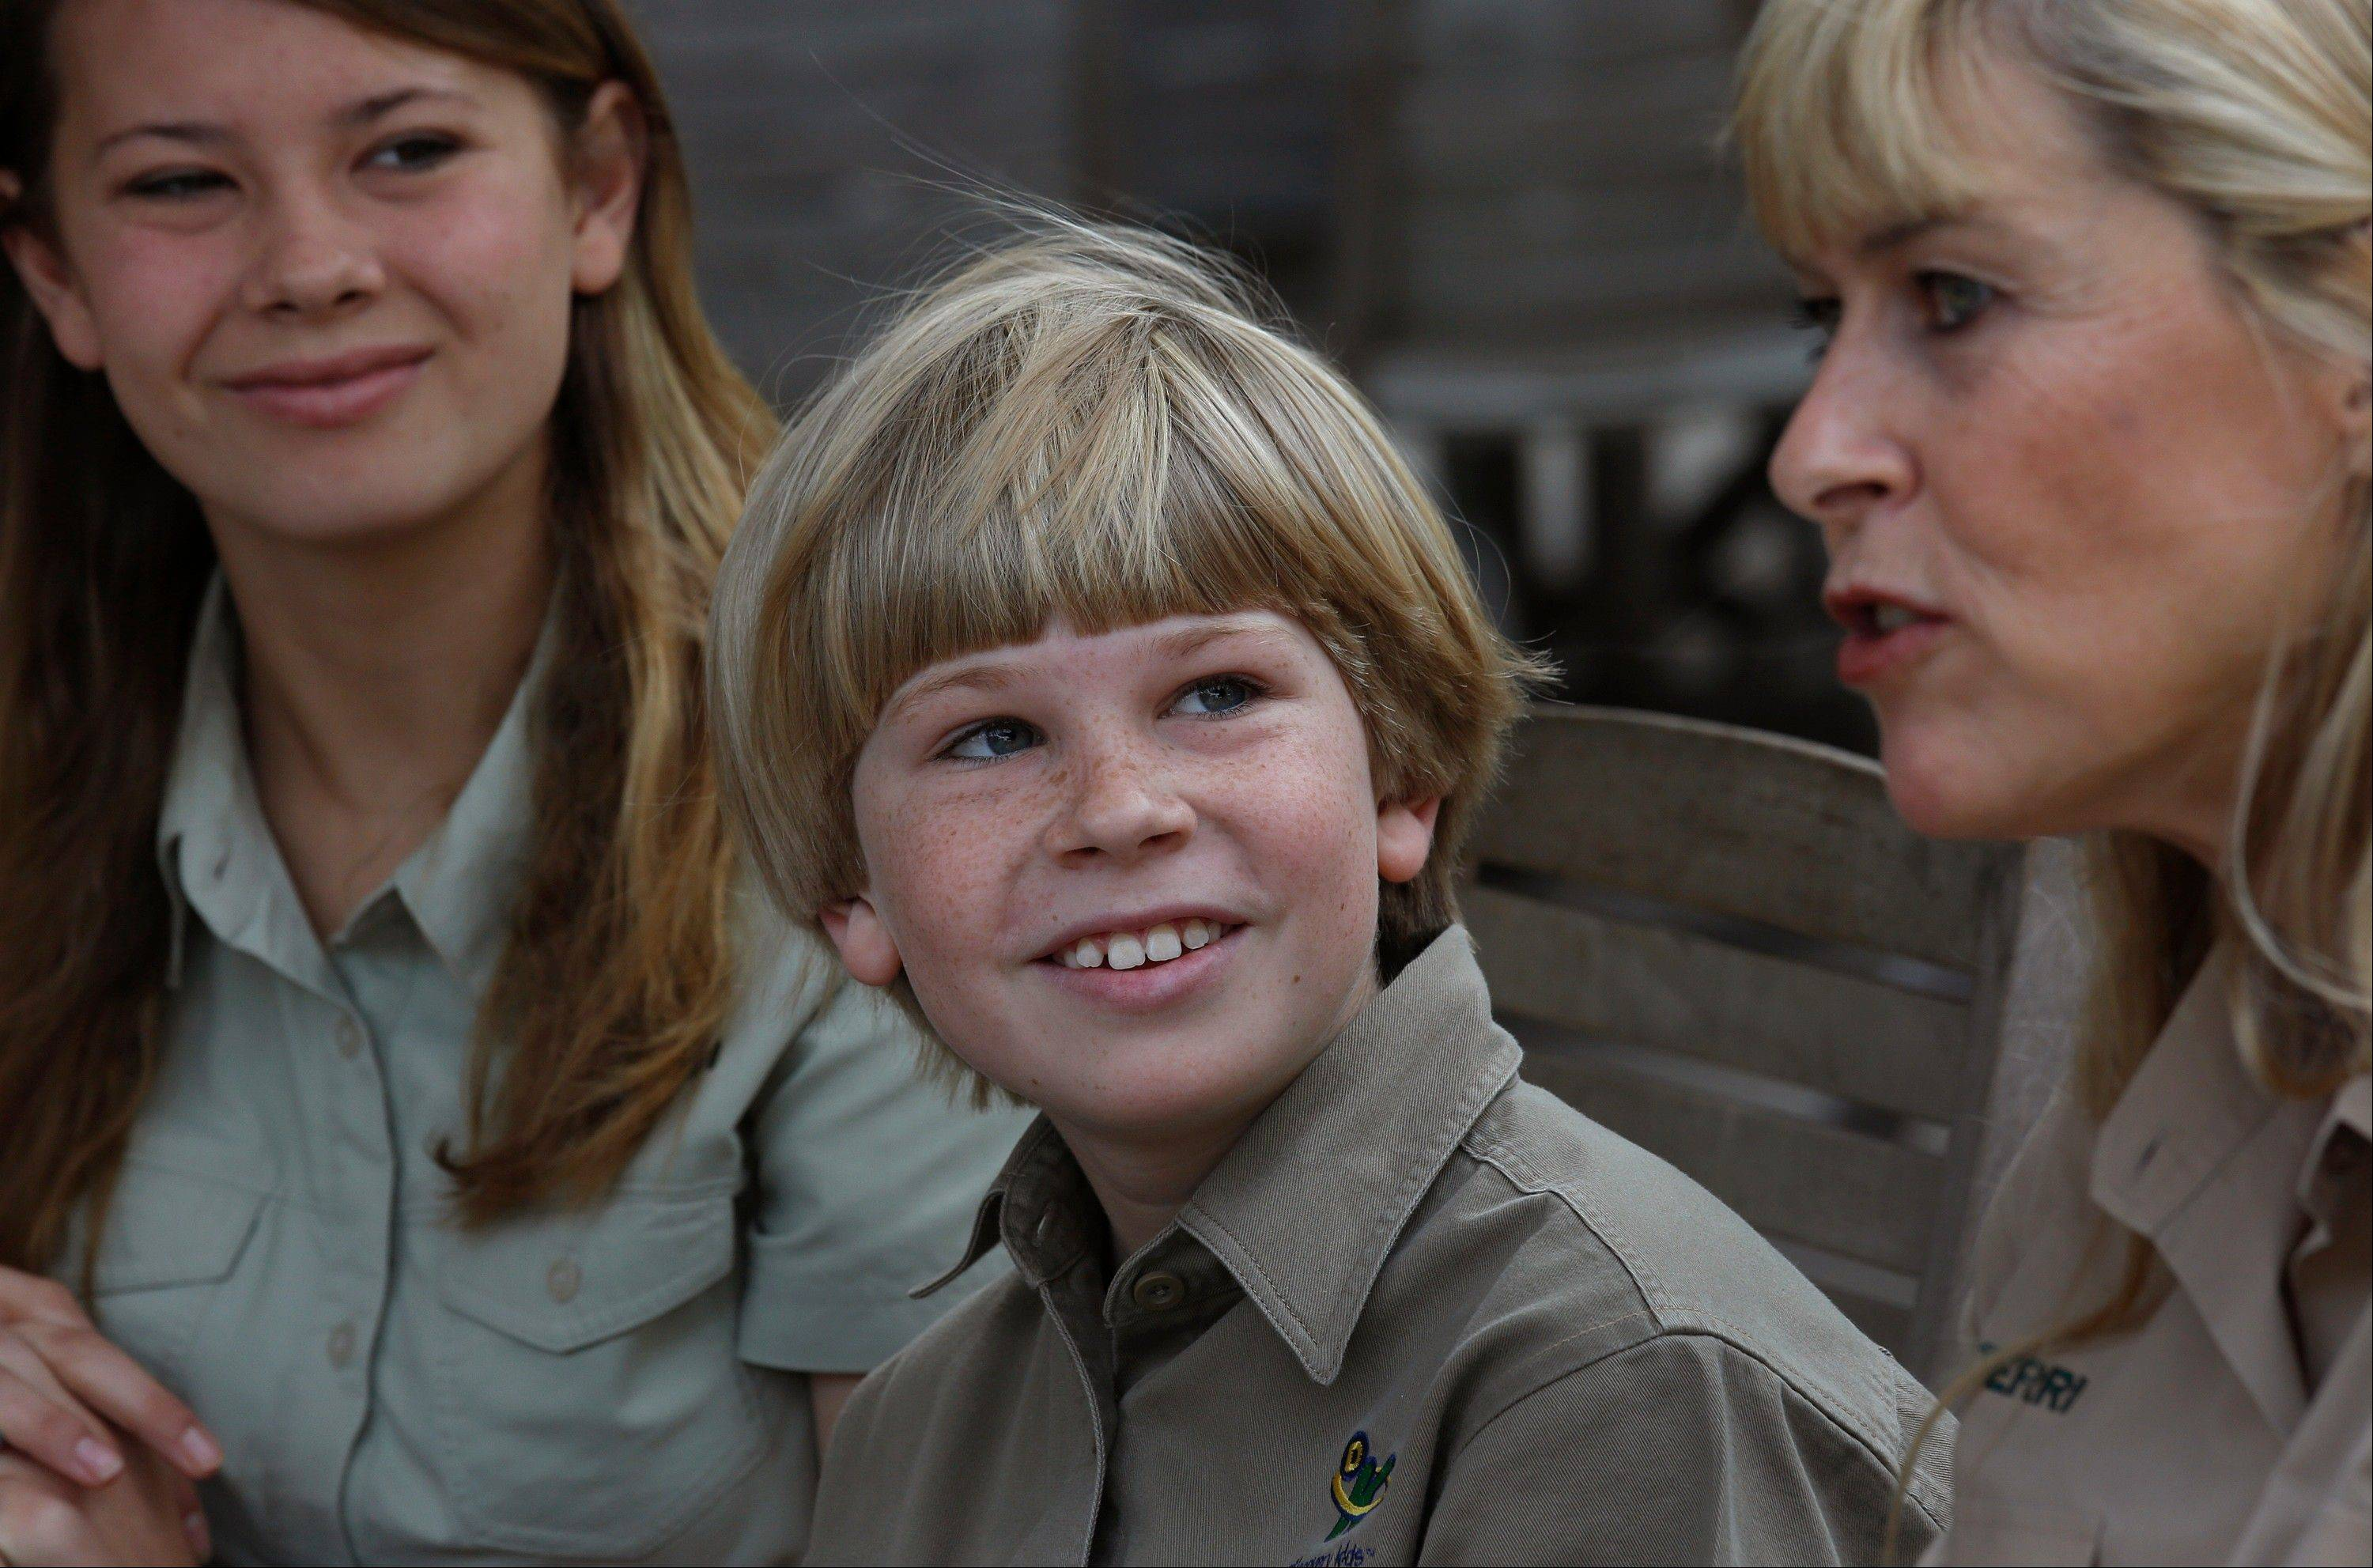 "Robert Irwin, 9, the son of the late Stephen Irwin, Australia's ""Crocodile Hunter,"" is following his father's footsteps by making his debut as a television host. He co-hosts ""Wild But True,"" a show on Discovery Kids that explores parallels between nature and science. He's sitting in between mom Terri and sister Bindi Irwin."